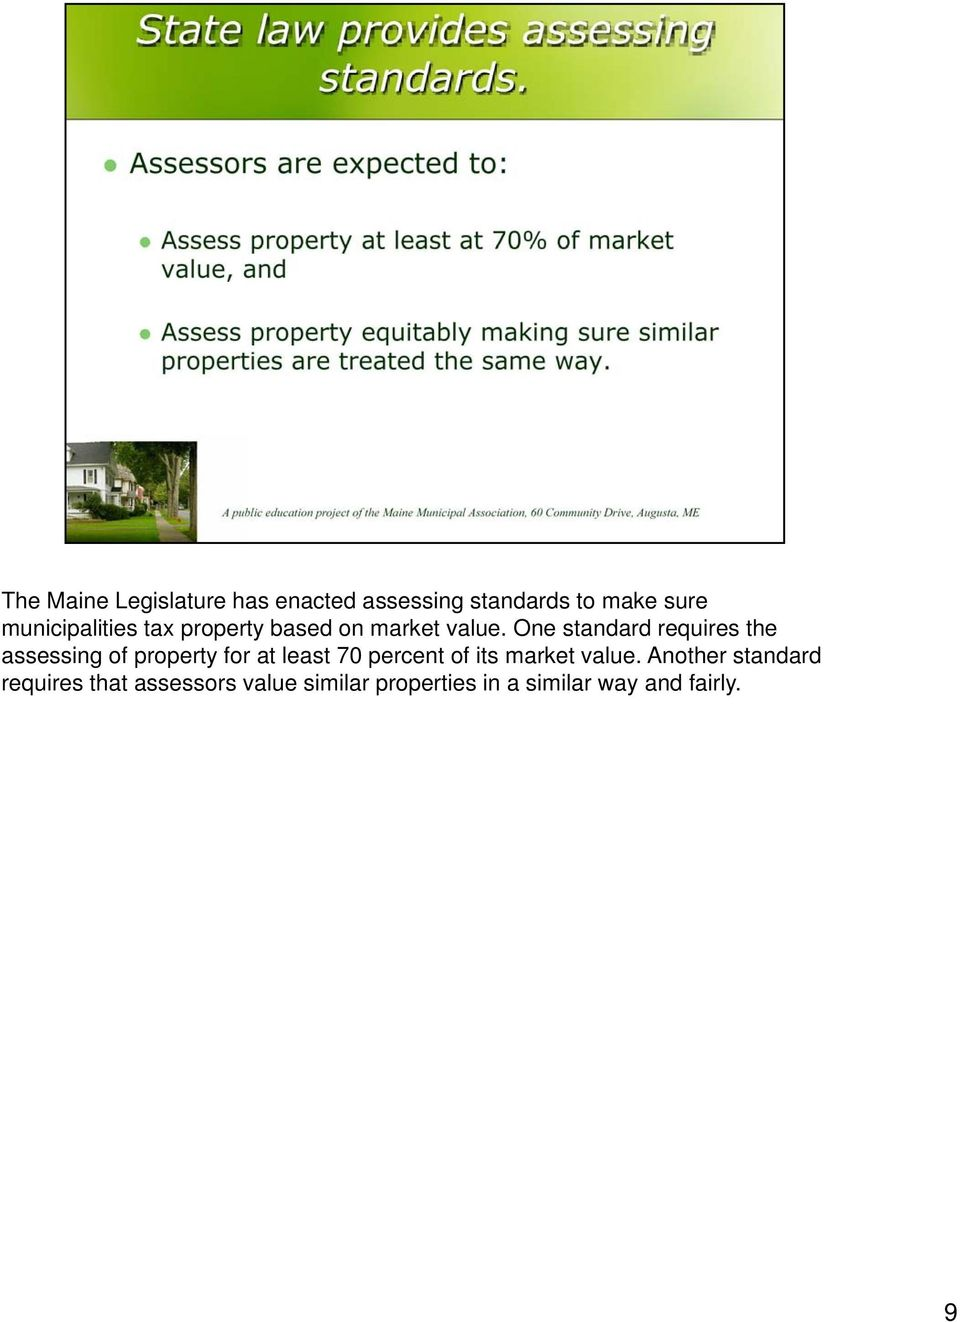 One standard requires the assessing of property for at least 70 percent of